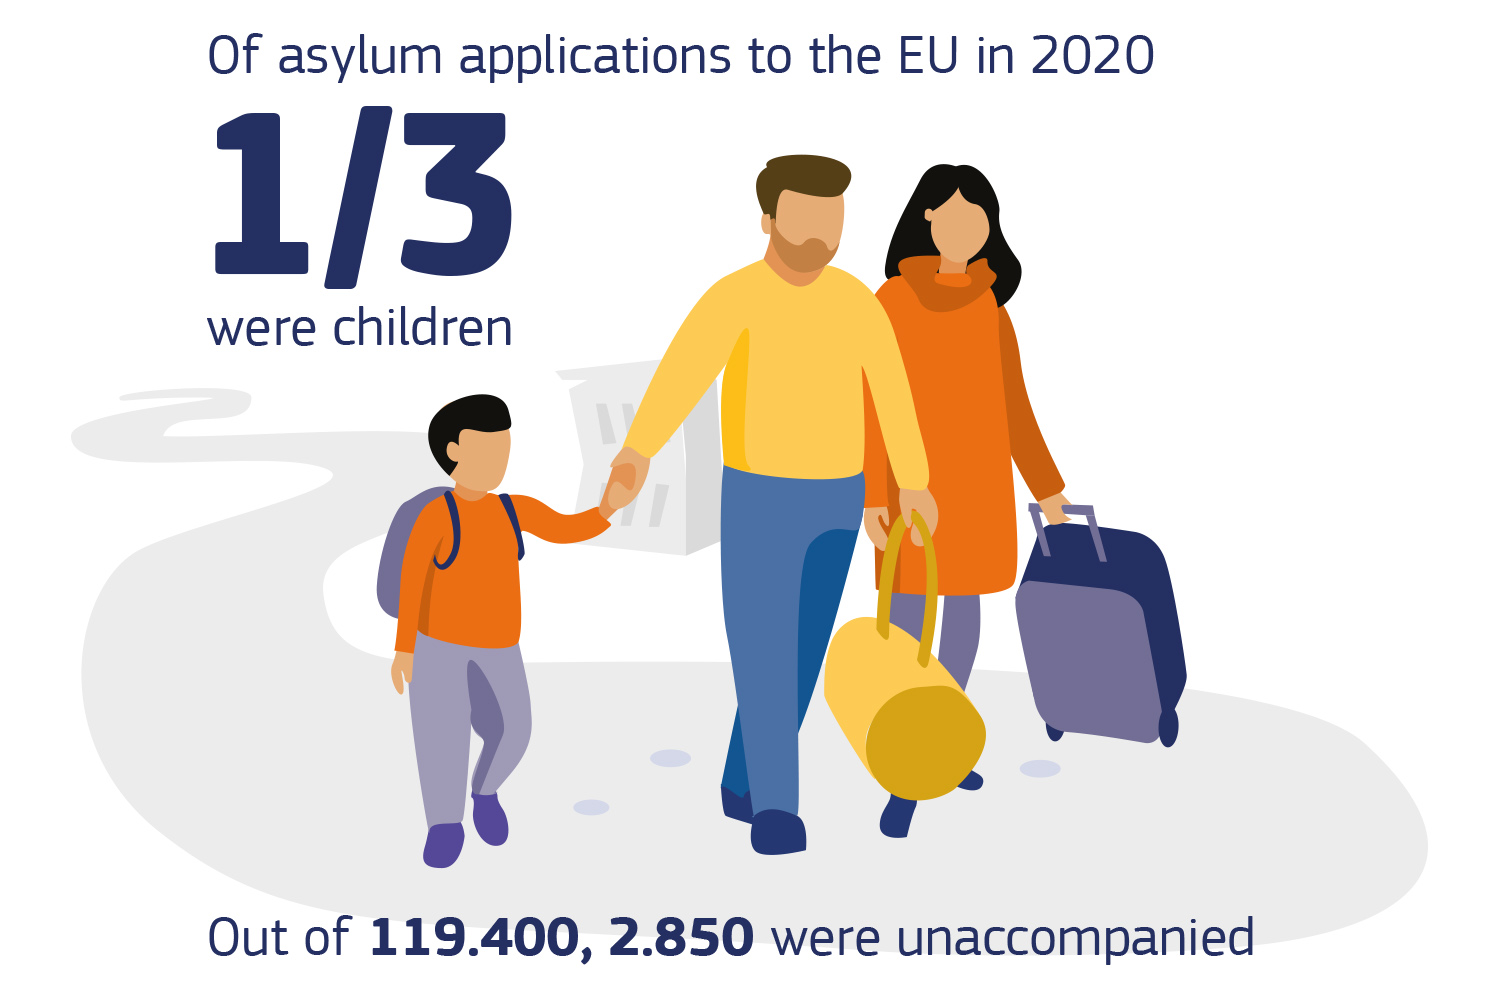 Of asylum applicants to the EU in 2020, 1/3 were children. Out of 119.400, 2.850 were unaccompanied.